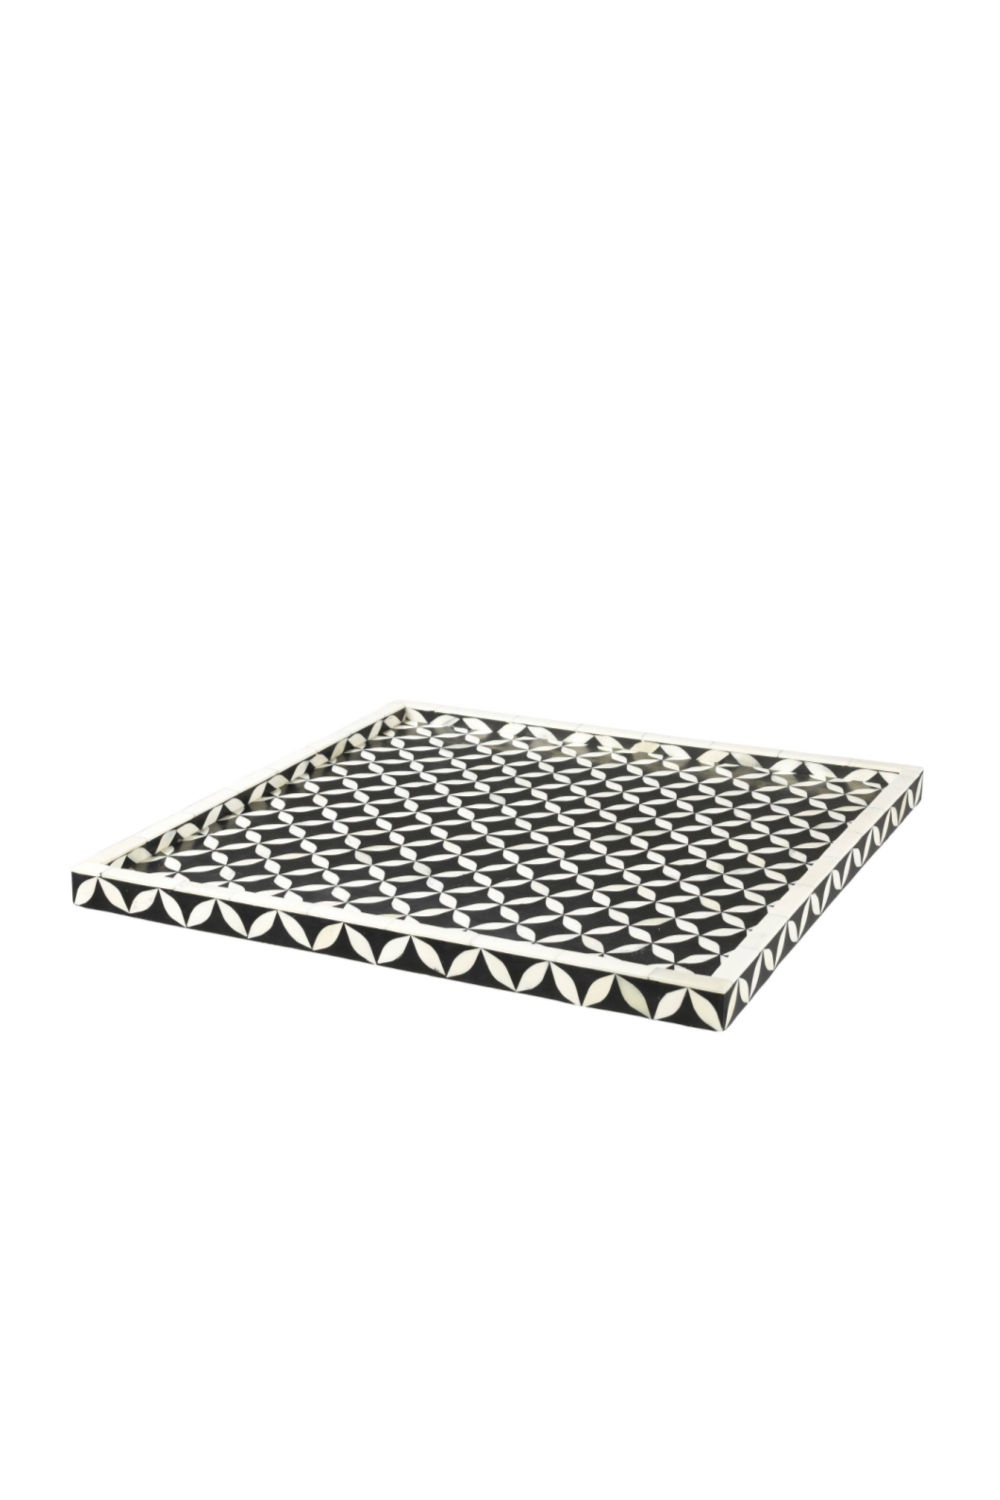 Black and White Tray | Eichholtz Leigh | #1 Eichholtz Online Retailer